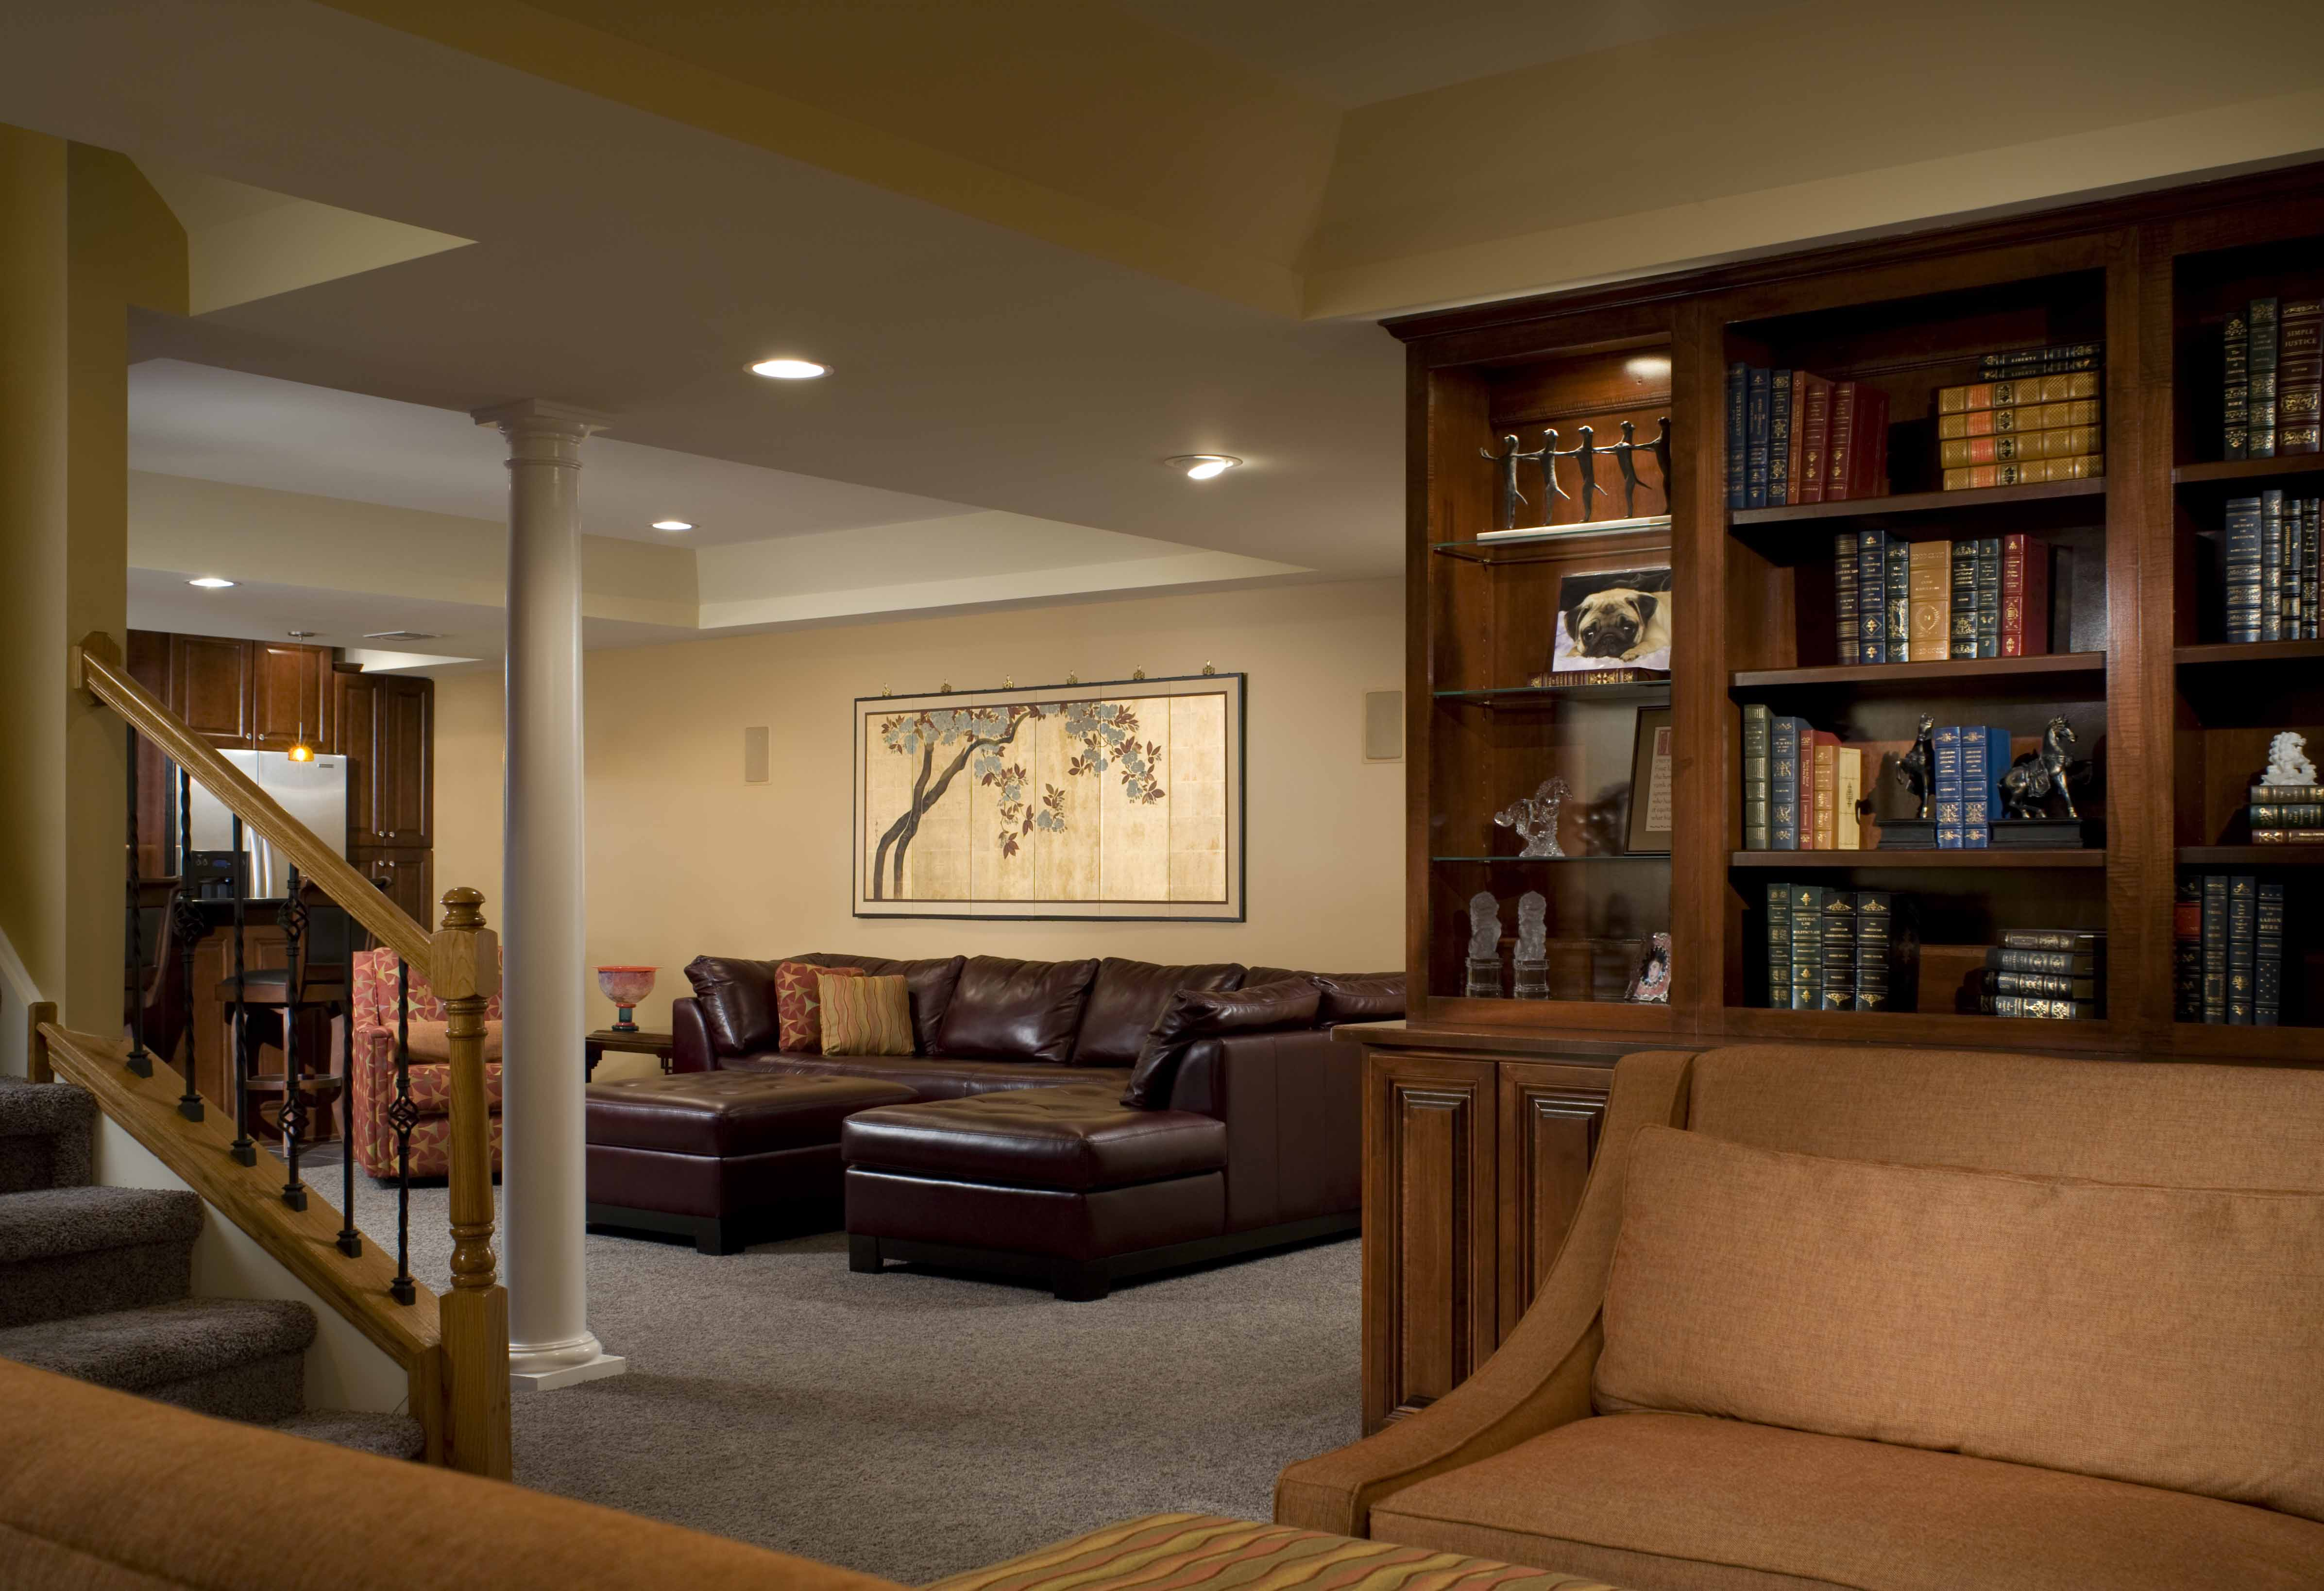 Basement Remodeling Ideas Entrancing 30 Basement Remodeling Ideas & Inspiration Inspiration